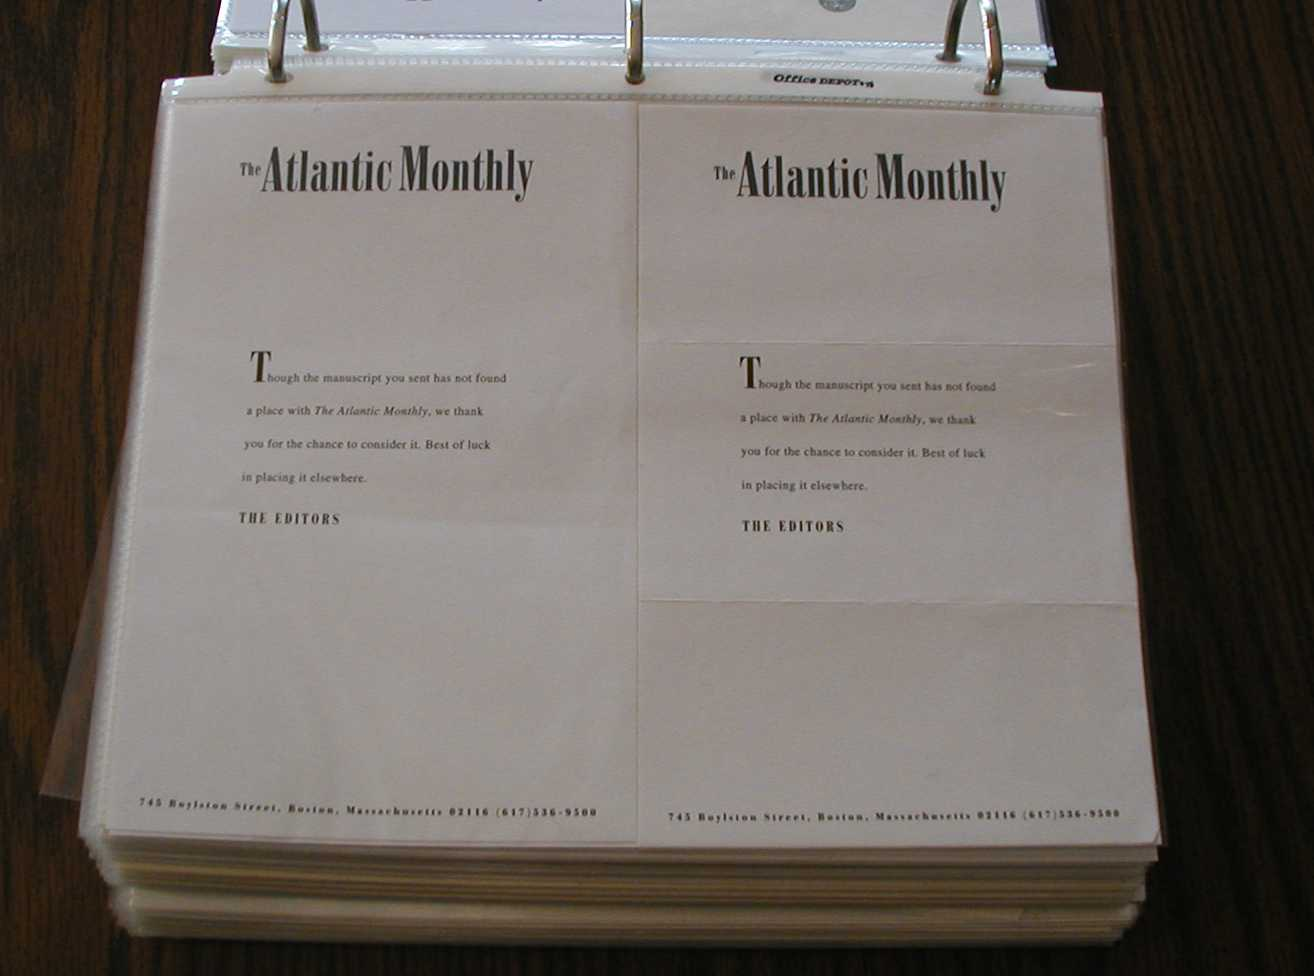 Atlantic Monthly rejections